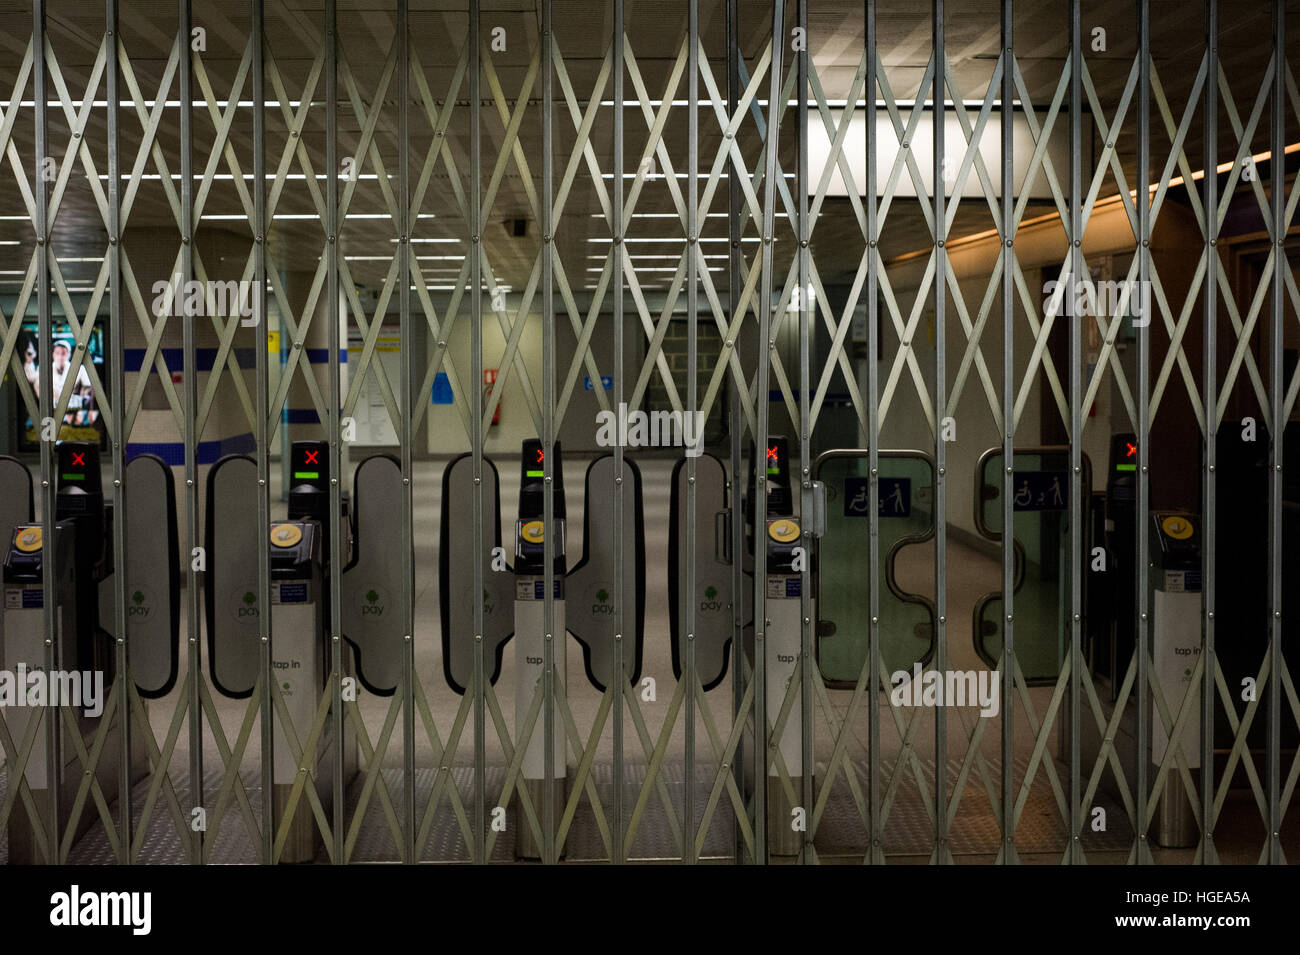 London, England, UK.  8th January 2017. Closed London under ground station with barriers. 24 hour strike on the London Underground started at 6pm. Transport for London (TFL) has advised that there will be a reduced service running during the strike. Closed station. Andrew Steven Graham/Alamy Live News Stock Photo